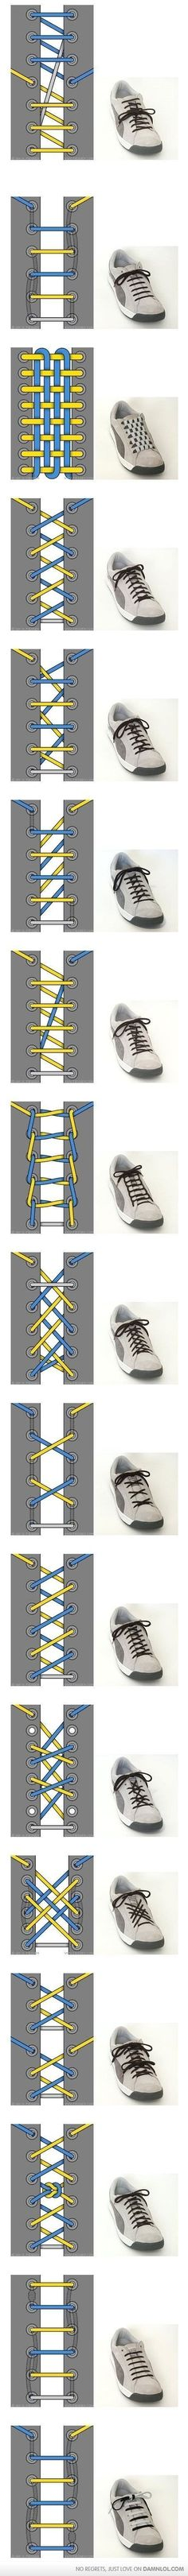 Cool Ways To Tie Your Shoe Laces...